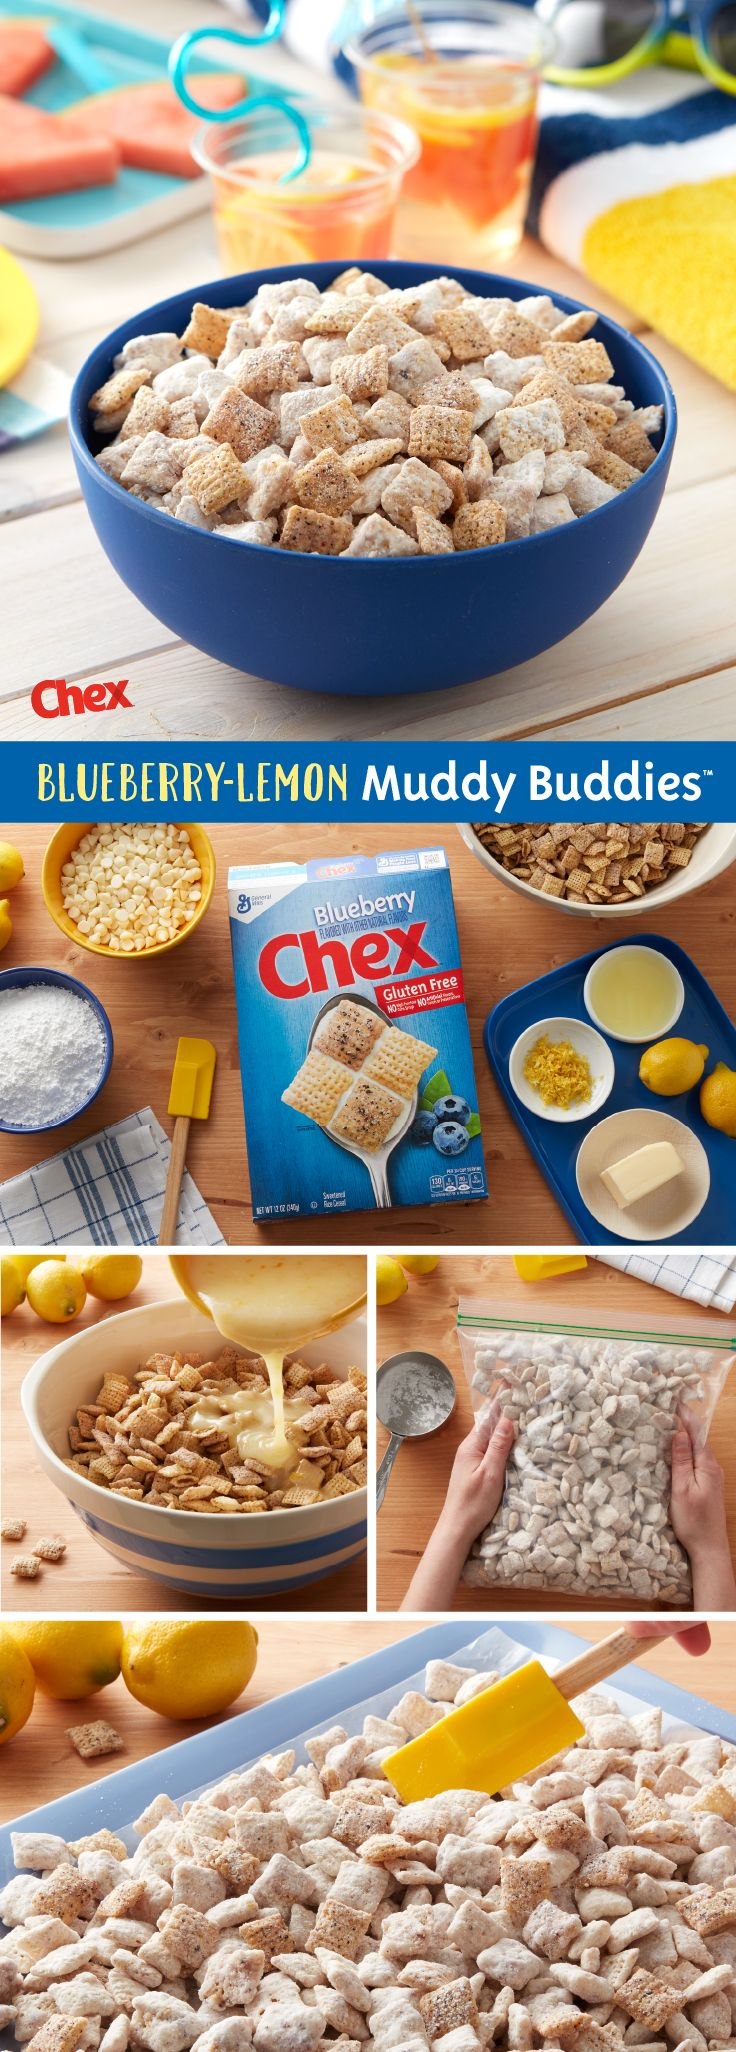 Made with NEW Gluten-Free Blueberry Chex, real lemon flavor, and a hint of sweetness, Blueberry-Lemon Muddy Buddies is here to make a splash at your next pool party! Ready in 15 minutes and with just 4 ingredients, Blueberry-Lemon Muddy Buddies is your pool party in the making.